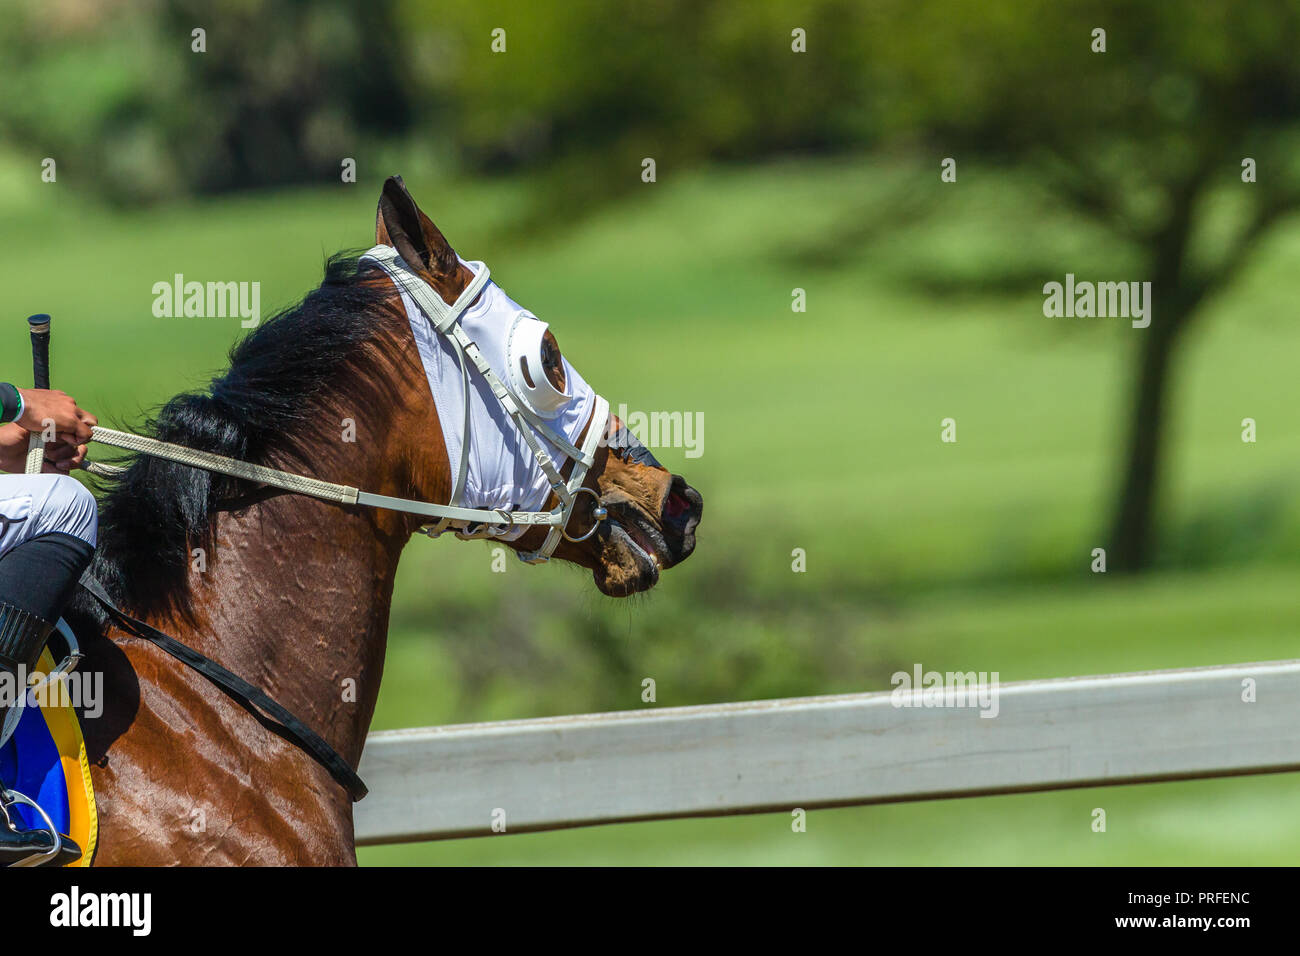 Race horse head neck stirrips blinkers close up on race track - Stock Image